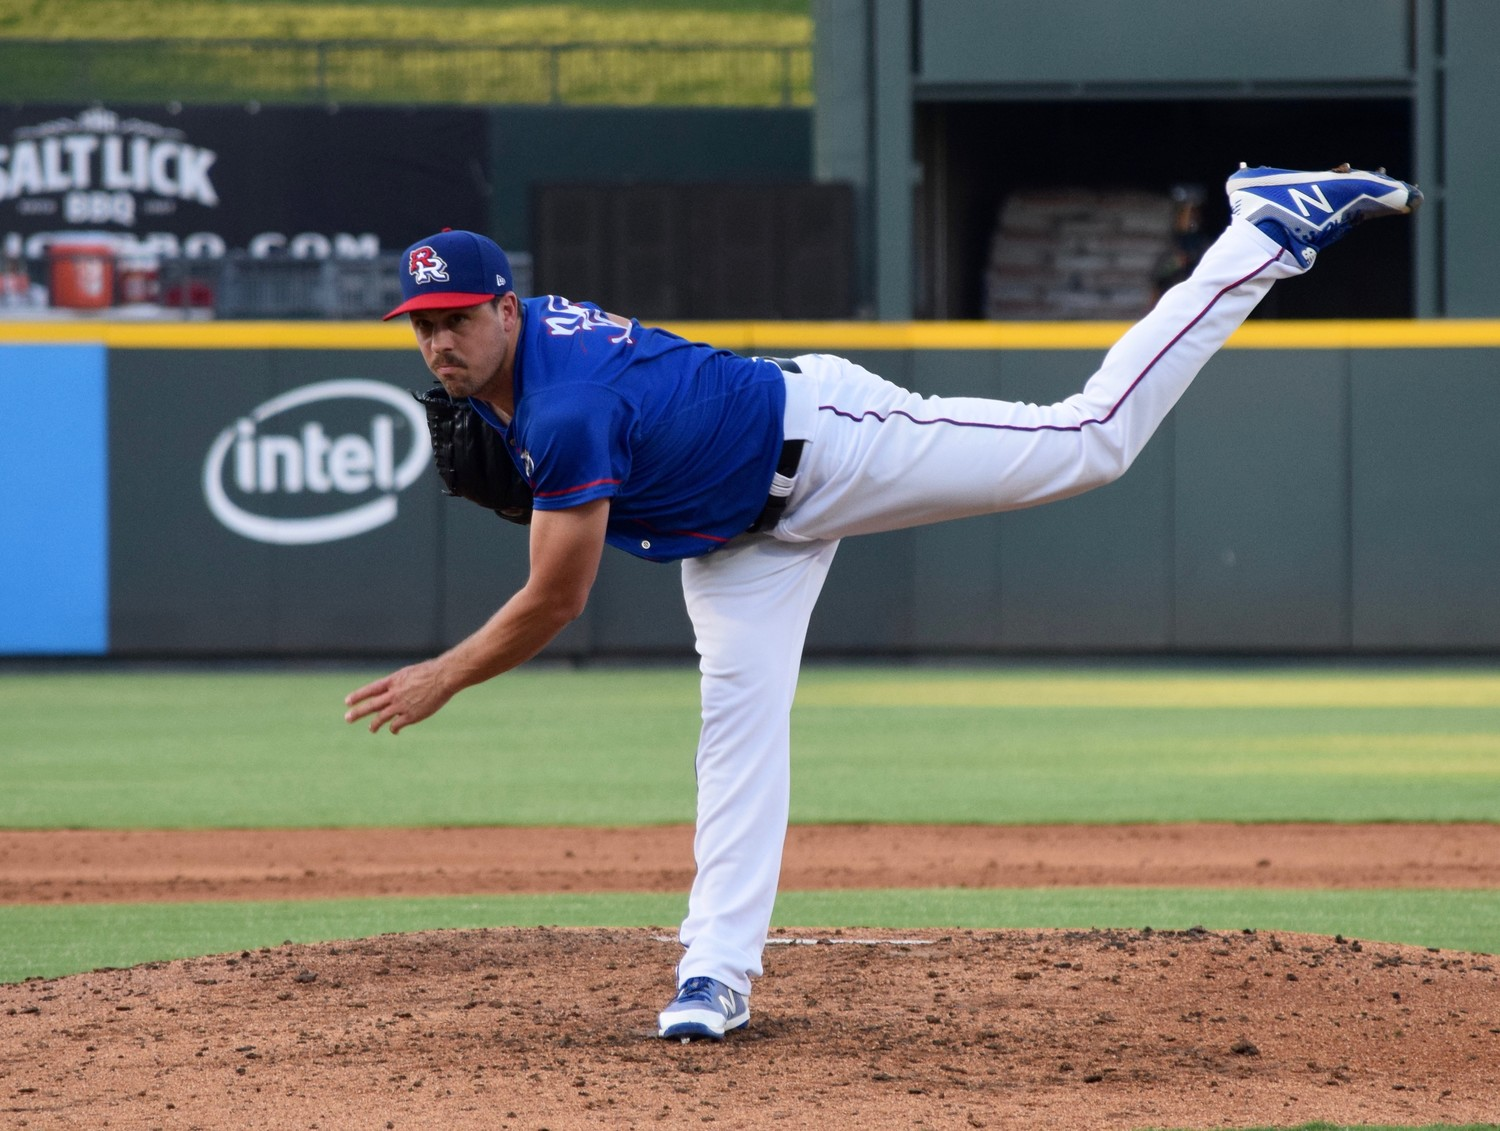 Express starter Michael Roth allowed three runs on seven hits with a pair of strikeouts and Round Rock lost 3-1 to the Sacramento River Cats on Friday night.